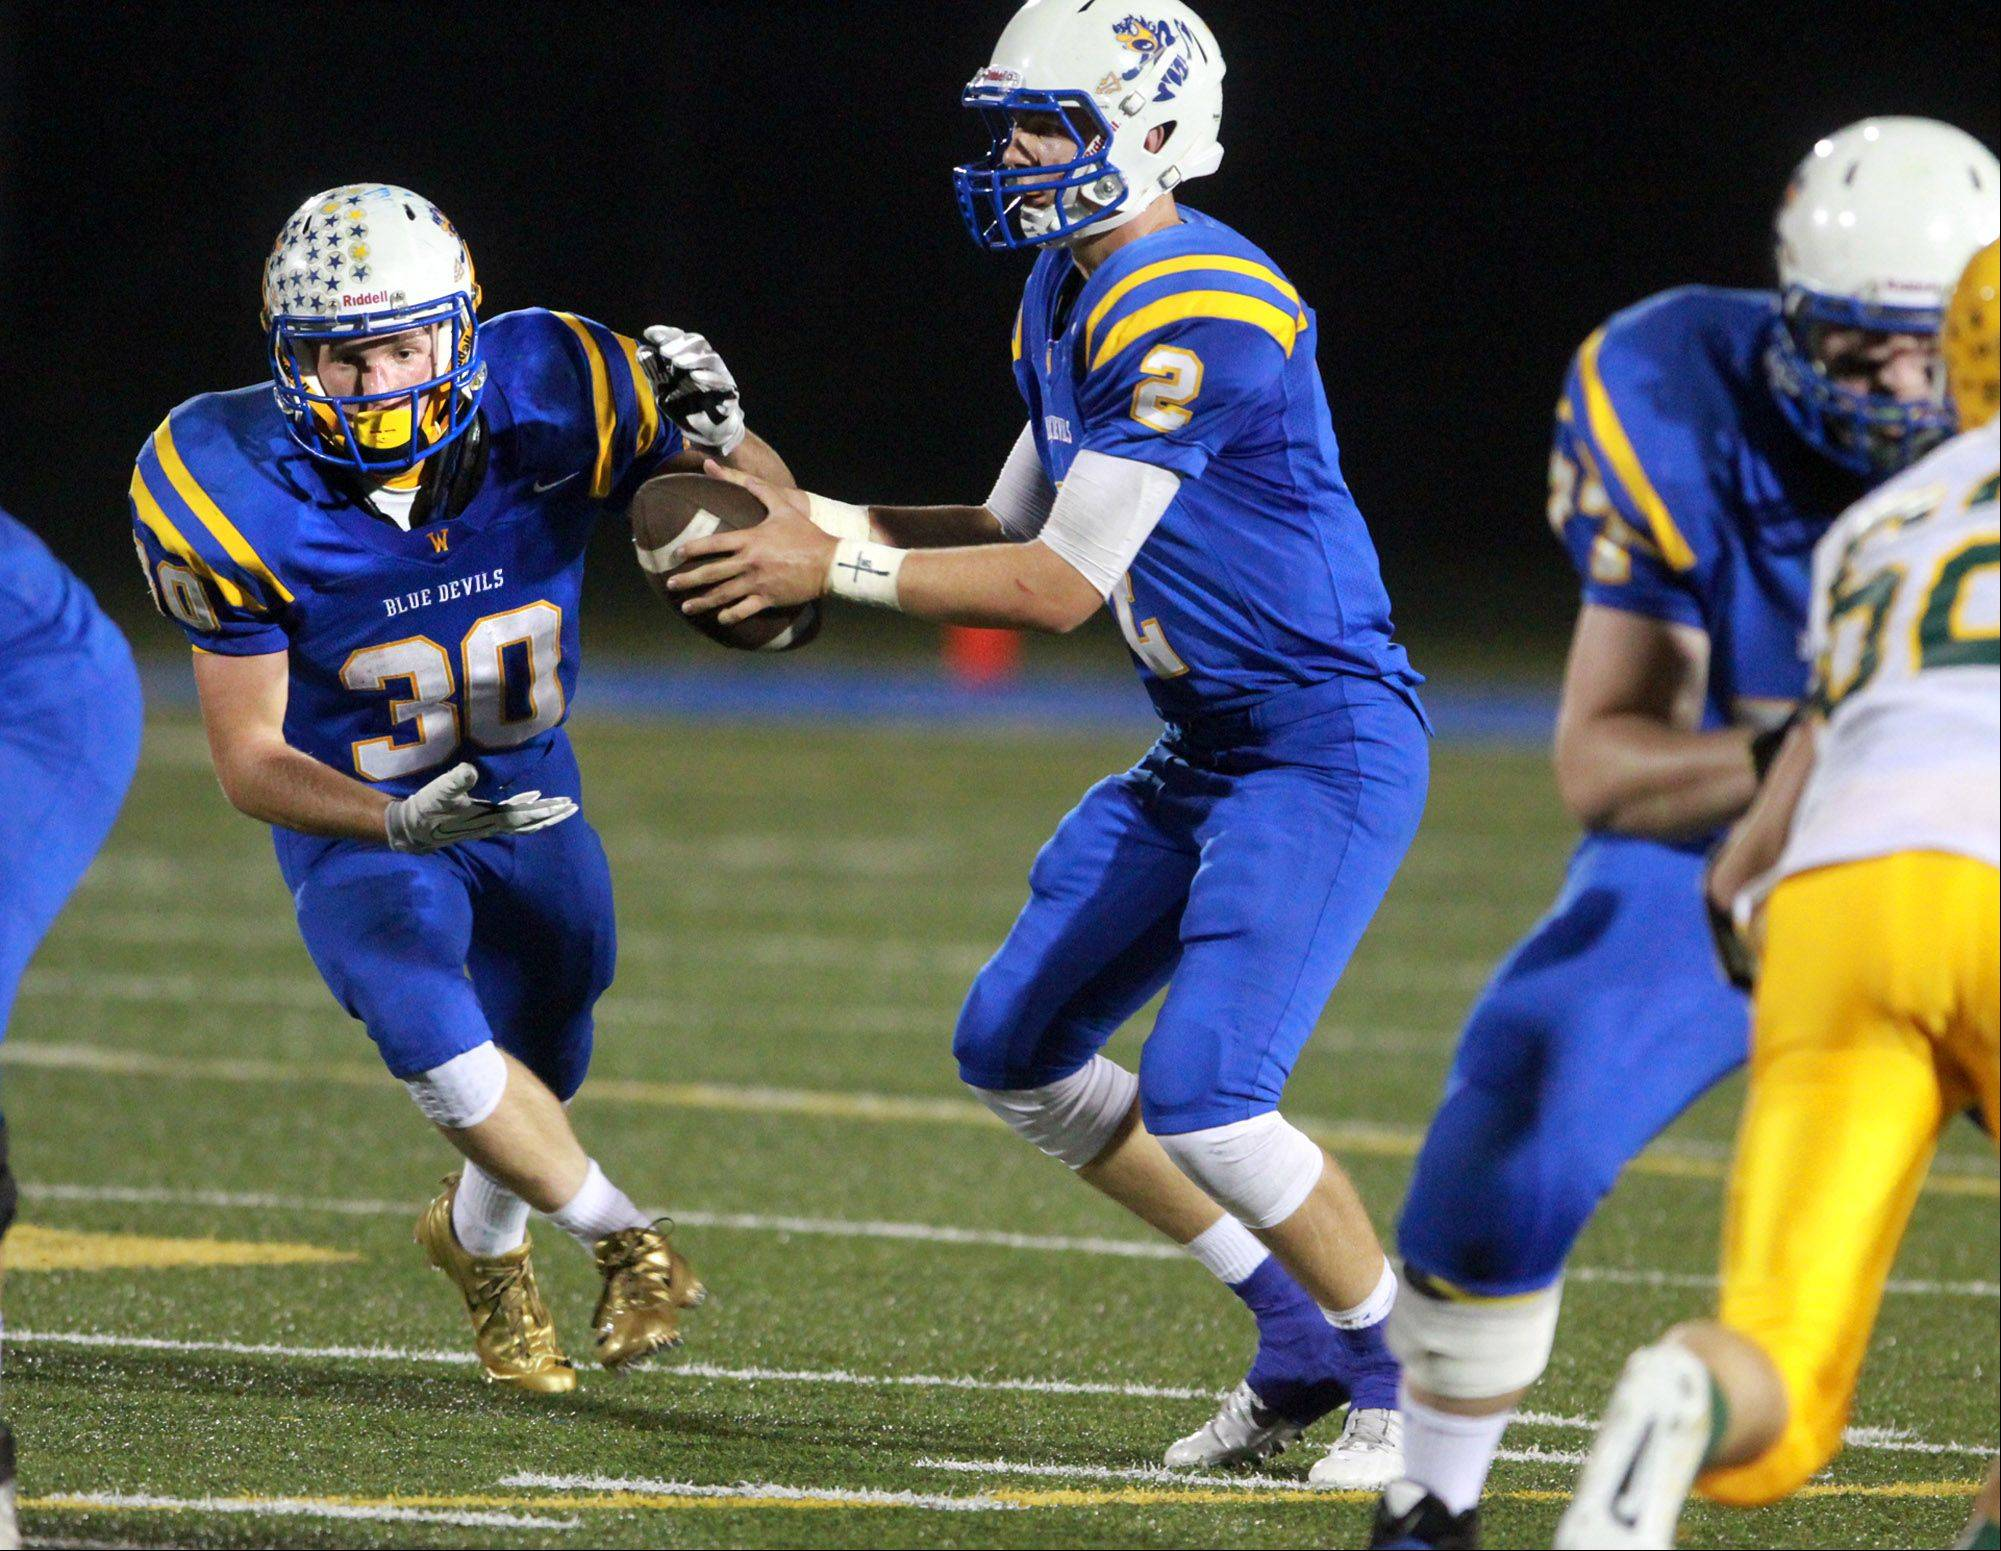 Warren quarterback Andrew Nickell hands off to running back Maxwell Sorby against Stevenson.